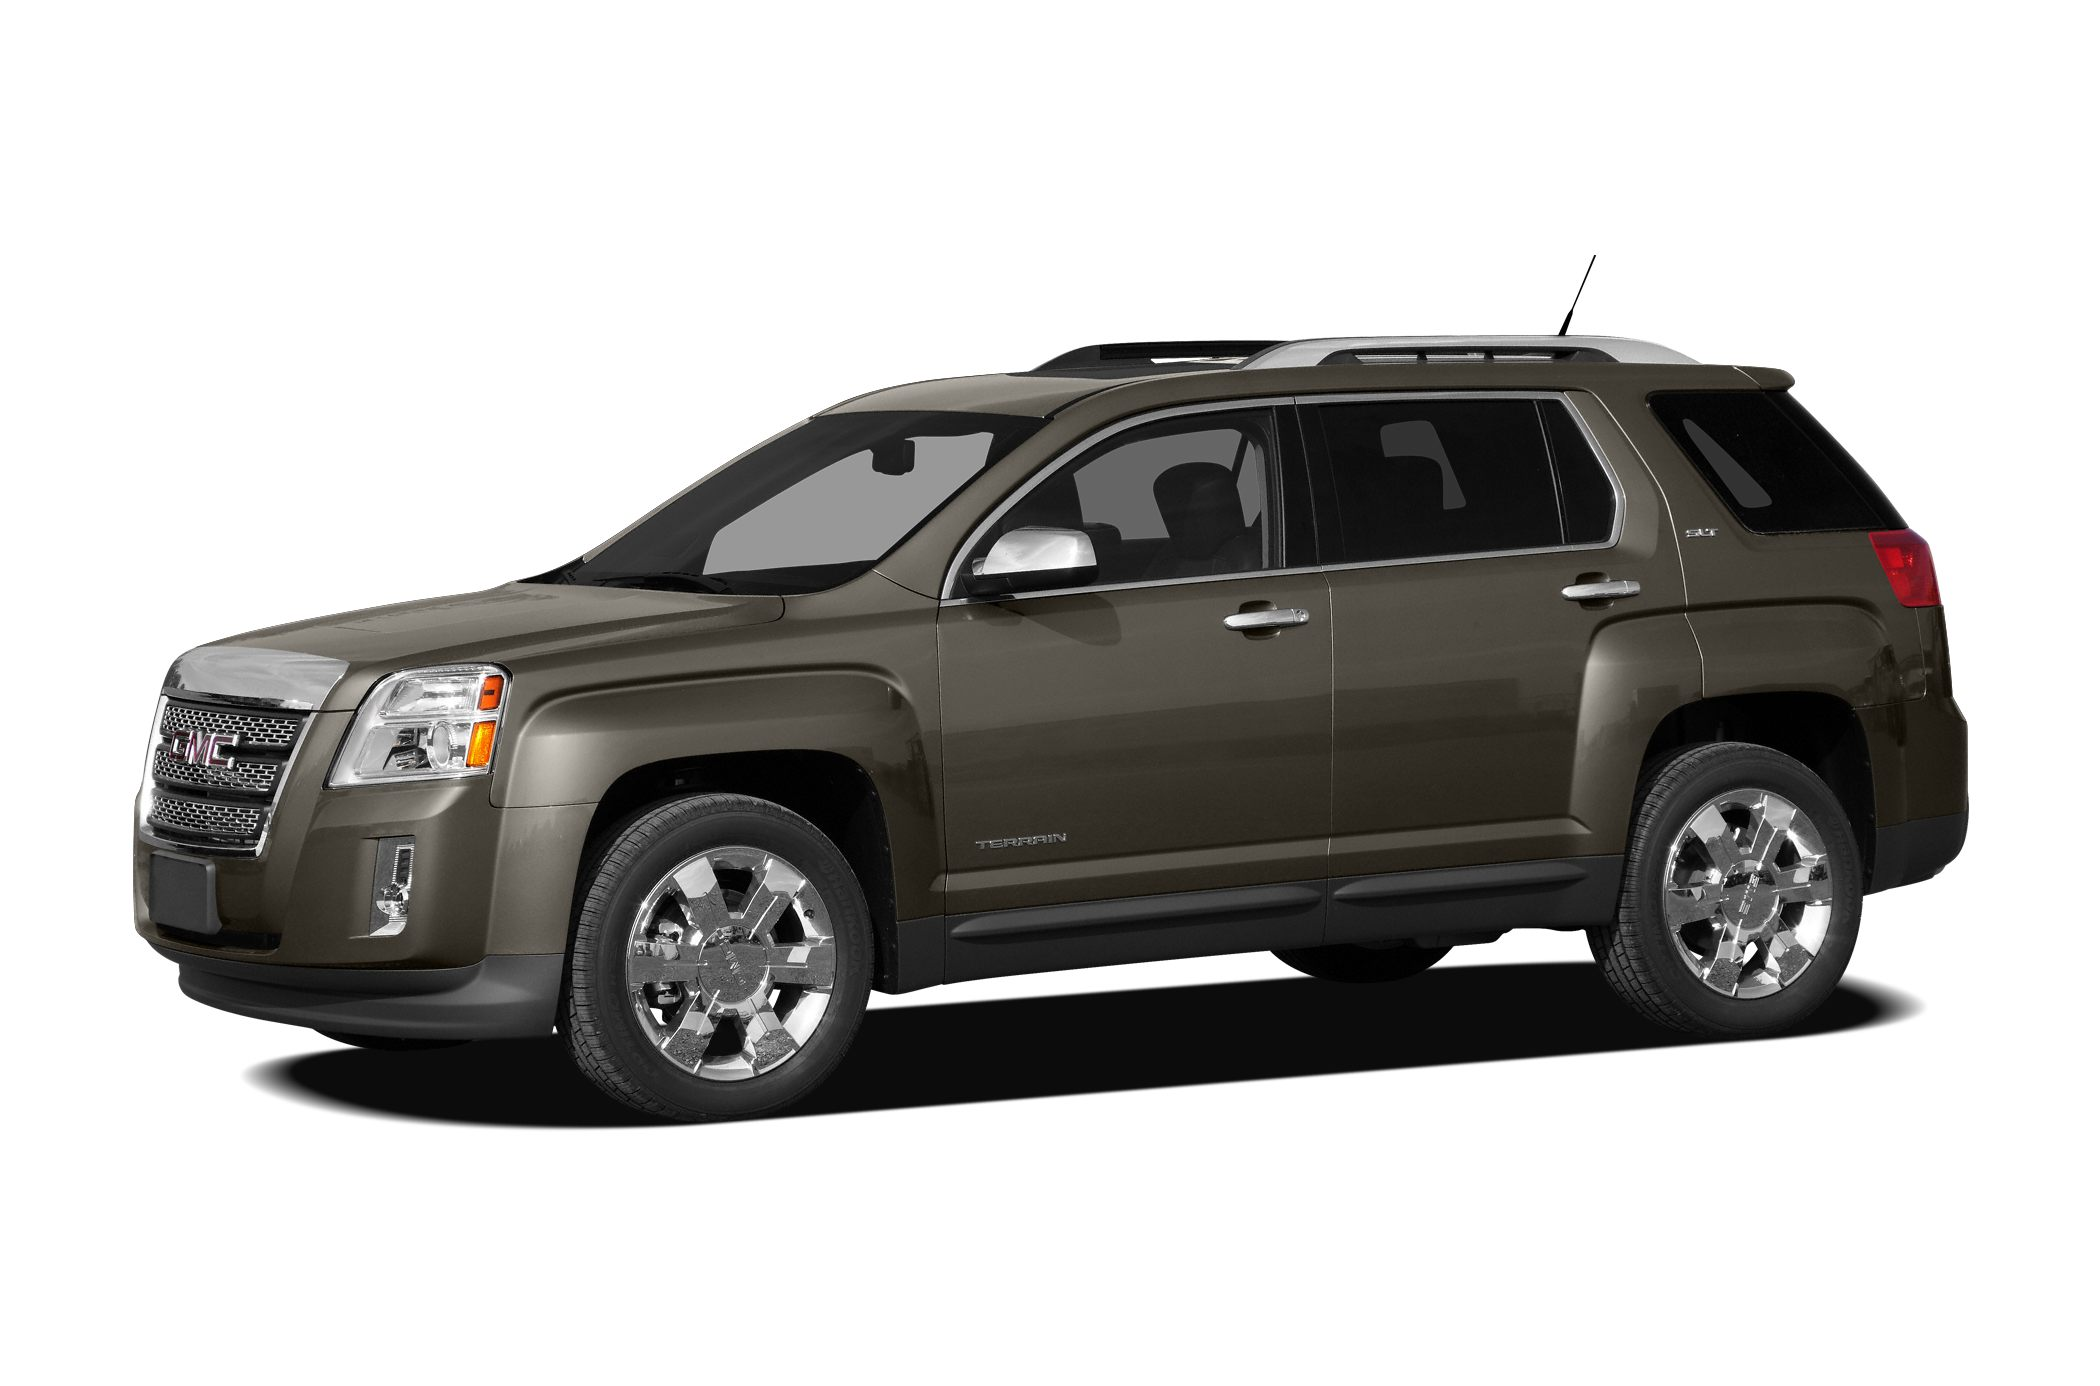 2011 GMC Terrain SLT-2 ITS OUR 50TH ANNIVERSARY HERE AT MARTYS AND TO CELEBRATE WERE OFFERING TH